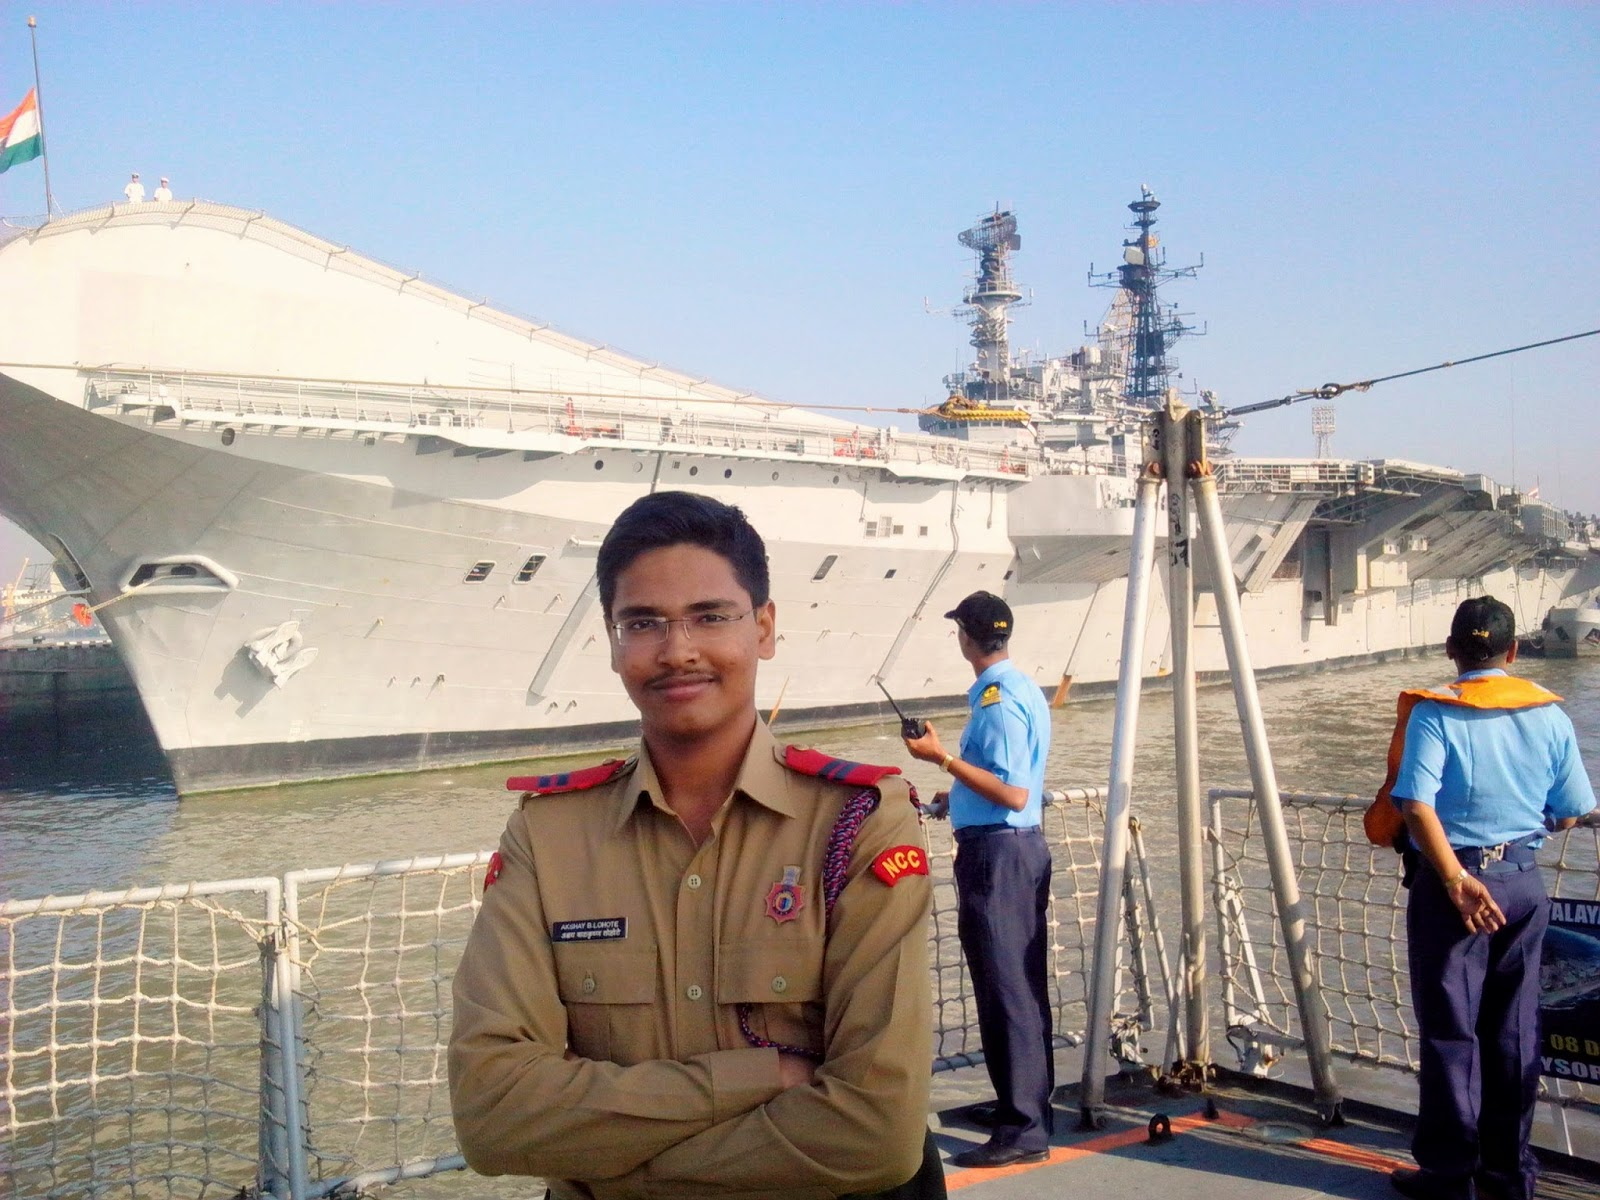 SUO Akshay Lohote On Indian Naval Ship 'INS Mysore' and In Background Aircraft Carrier 'INS Viraat'